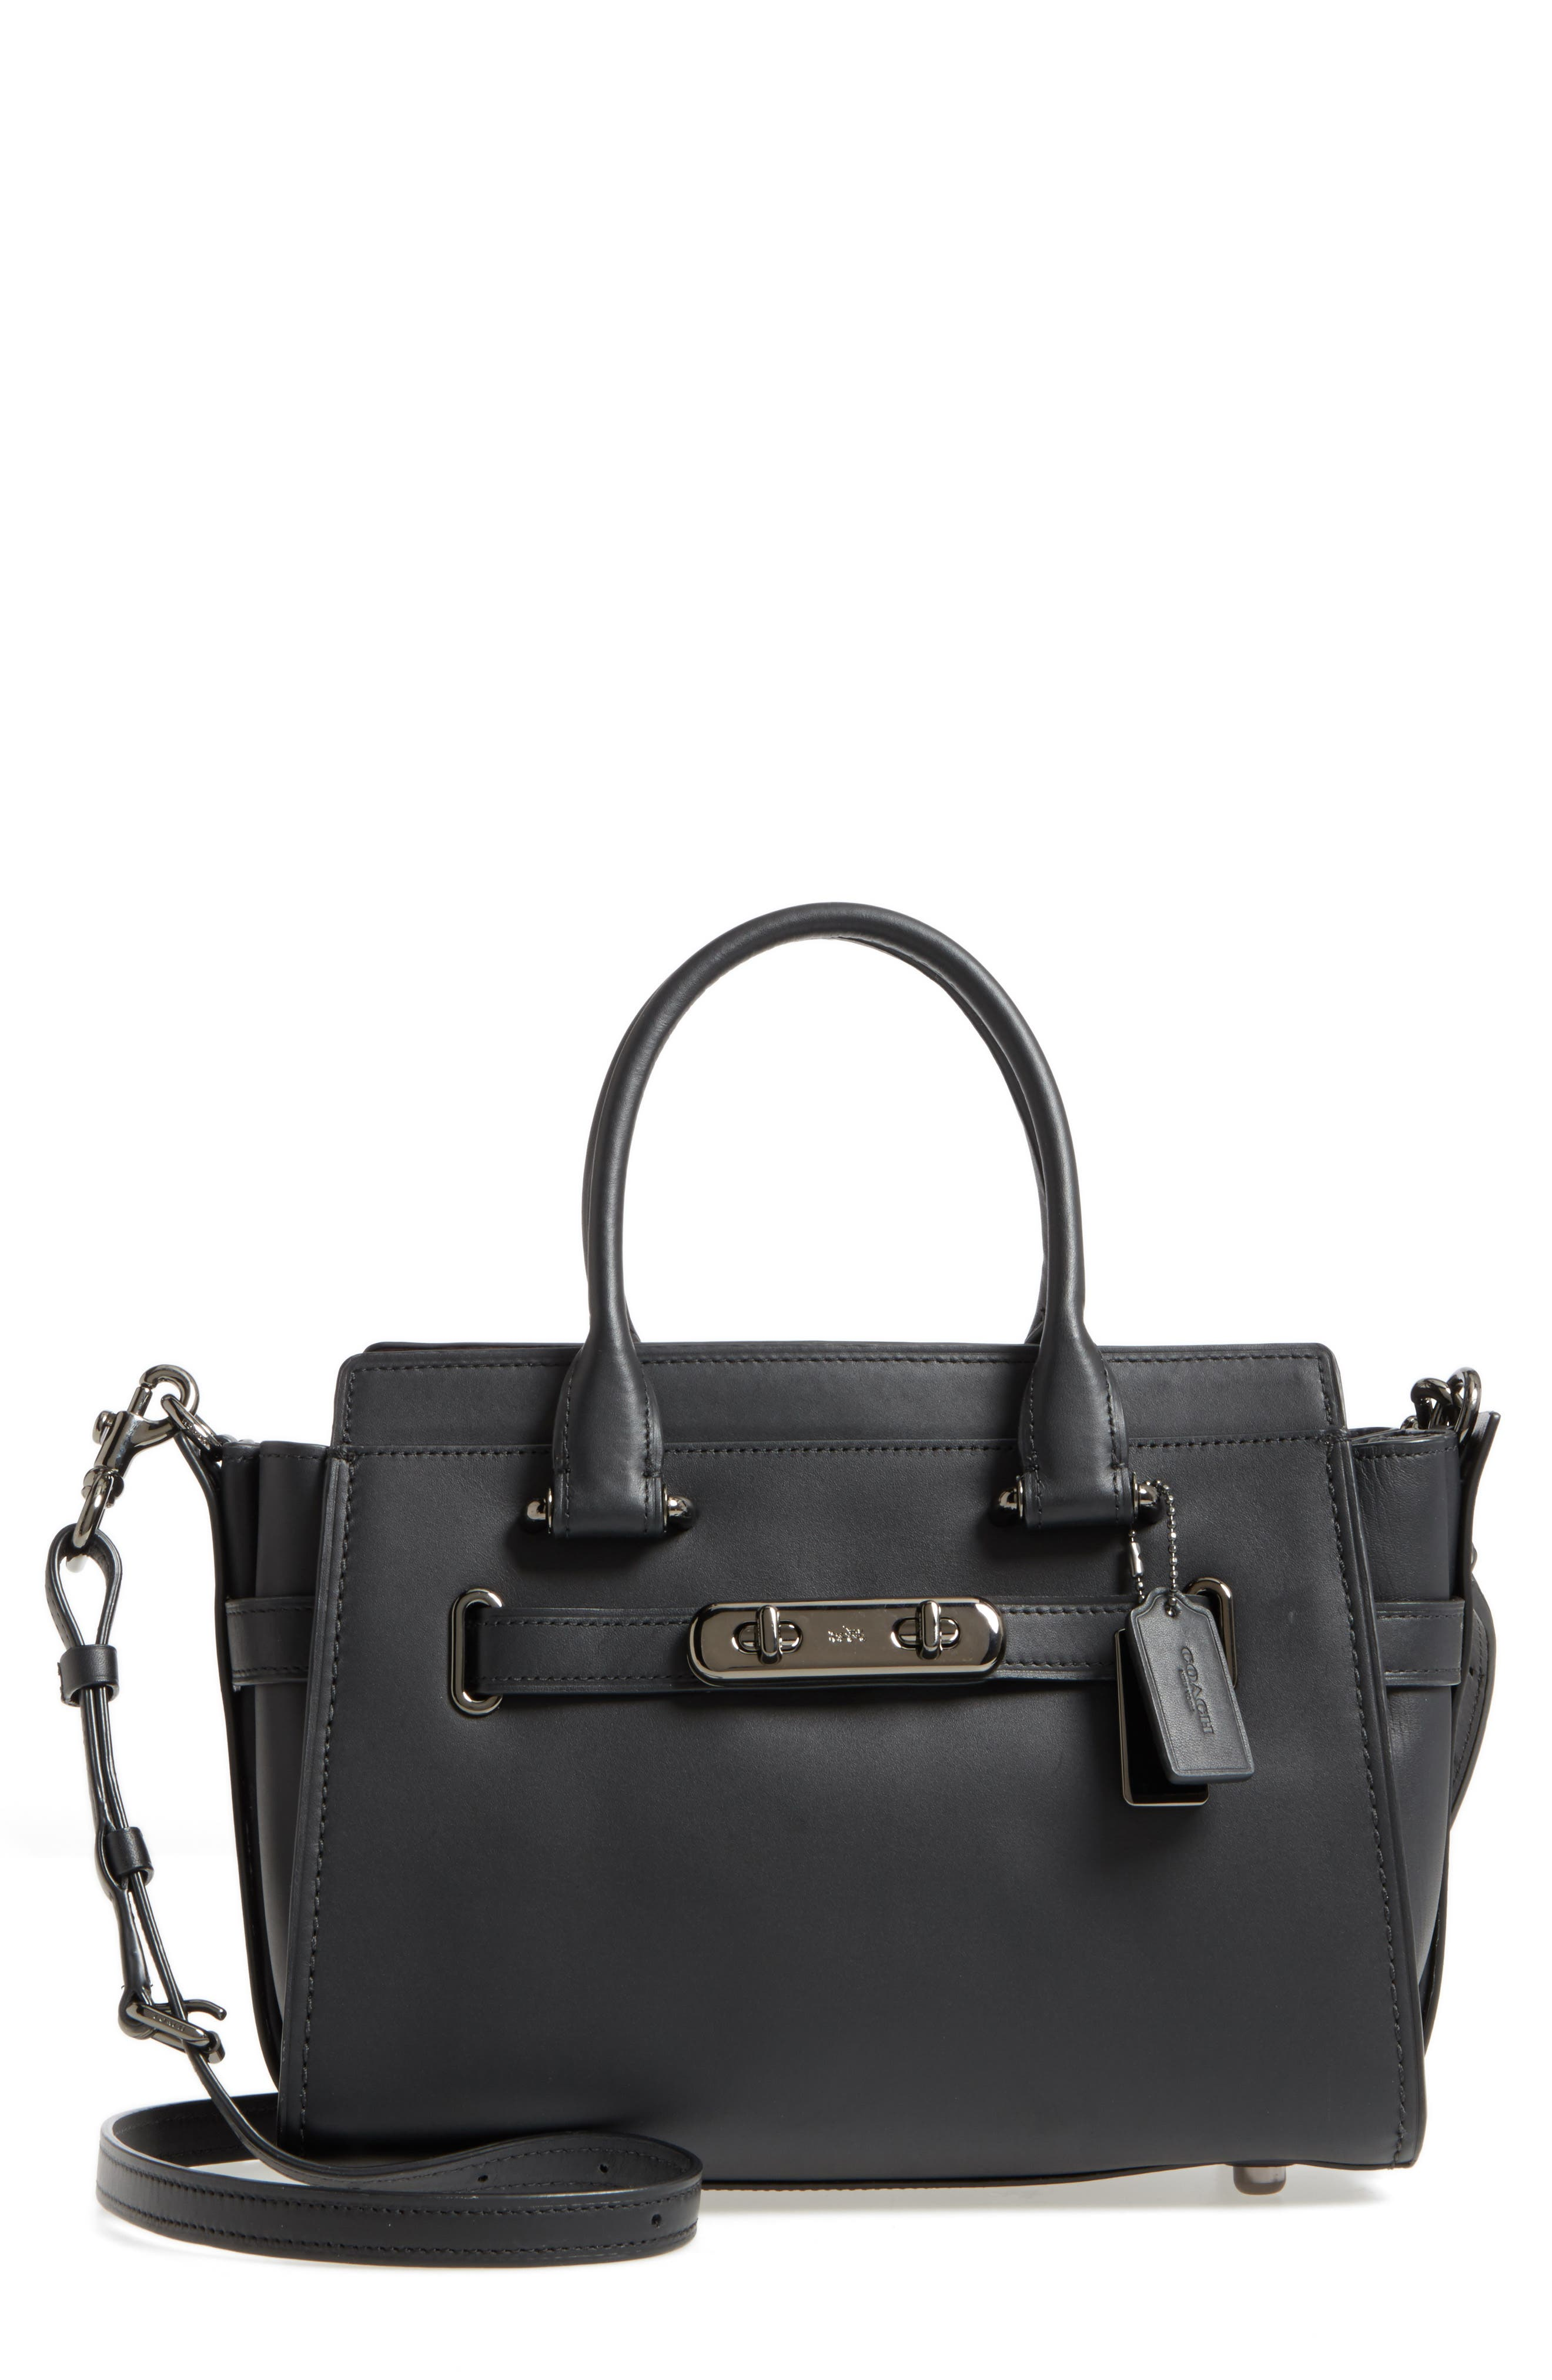 COACH Swagger 27 Calfskin Leather Satchel